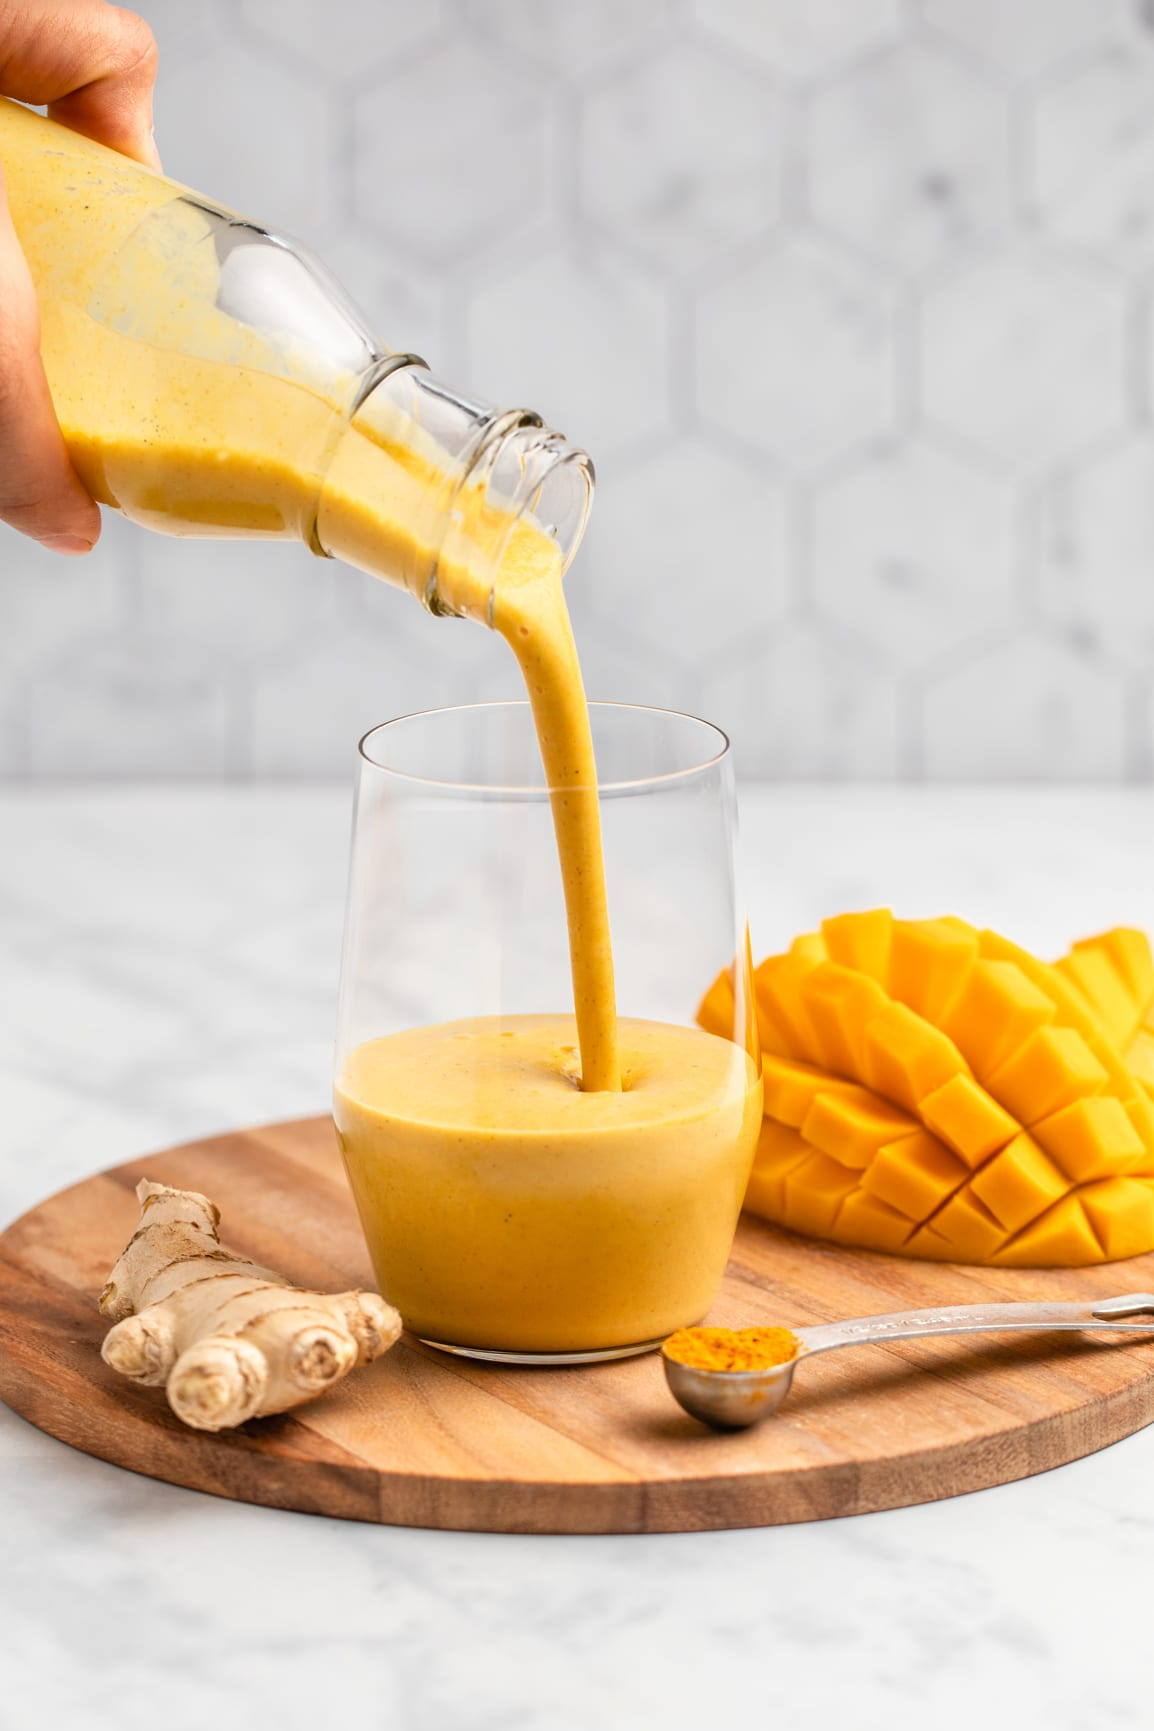 hand pouring golden milk mango smoothie into empty glass on wood serving board